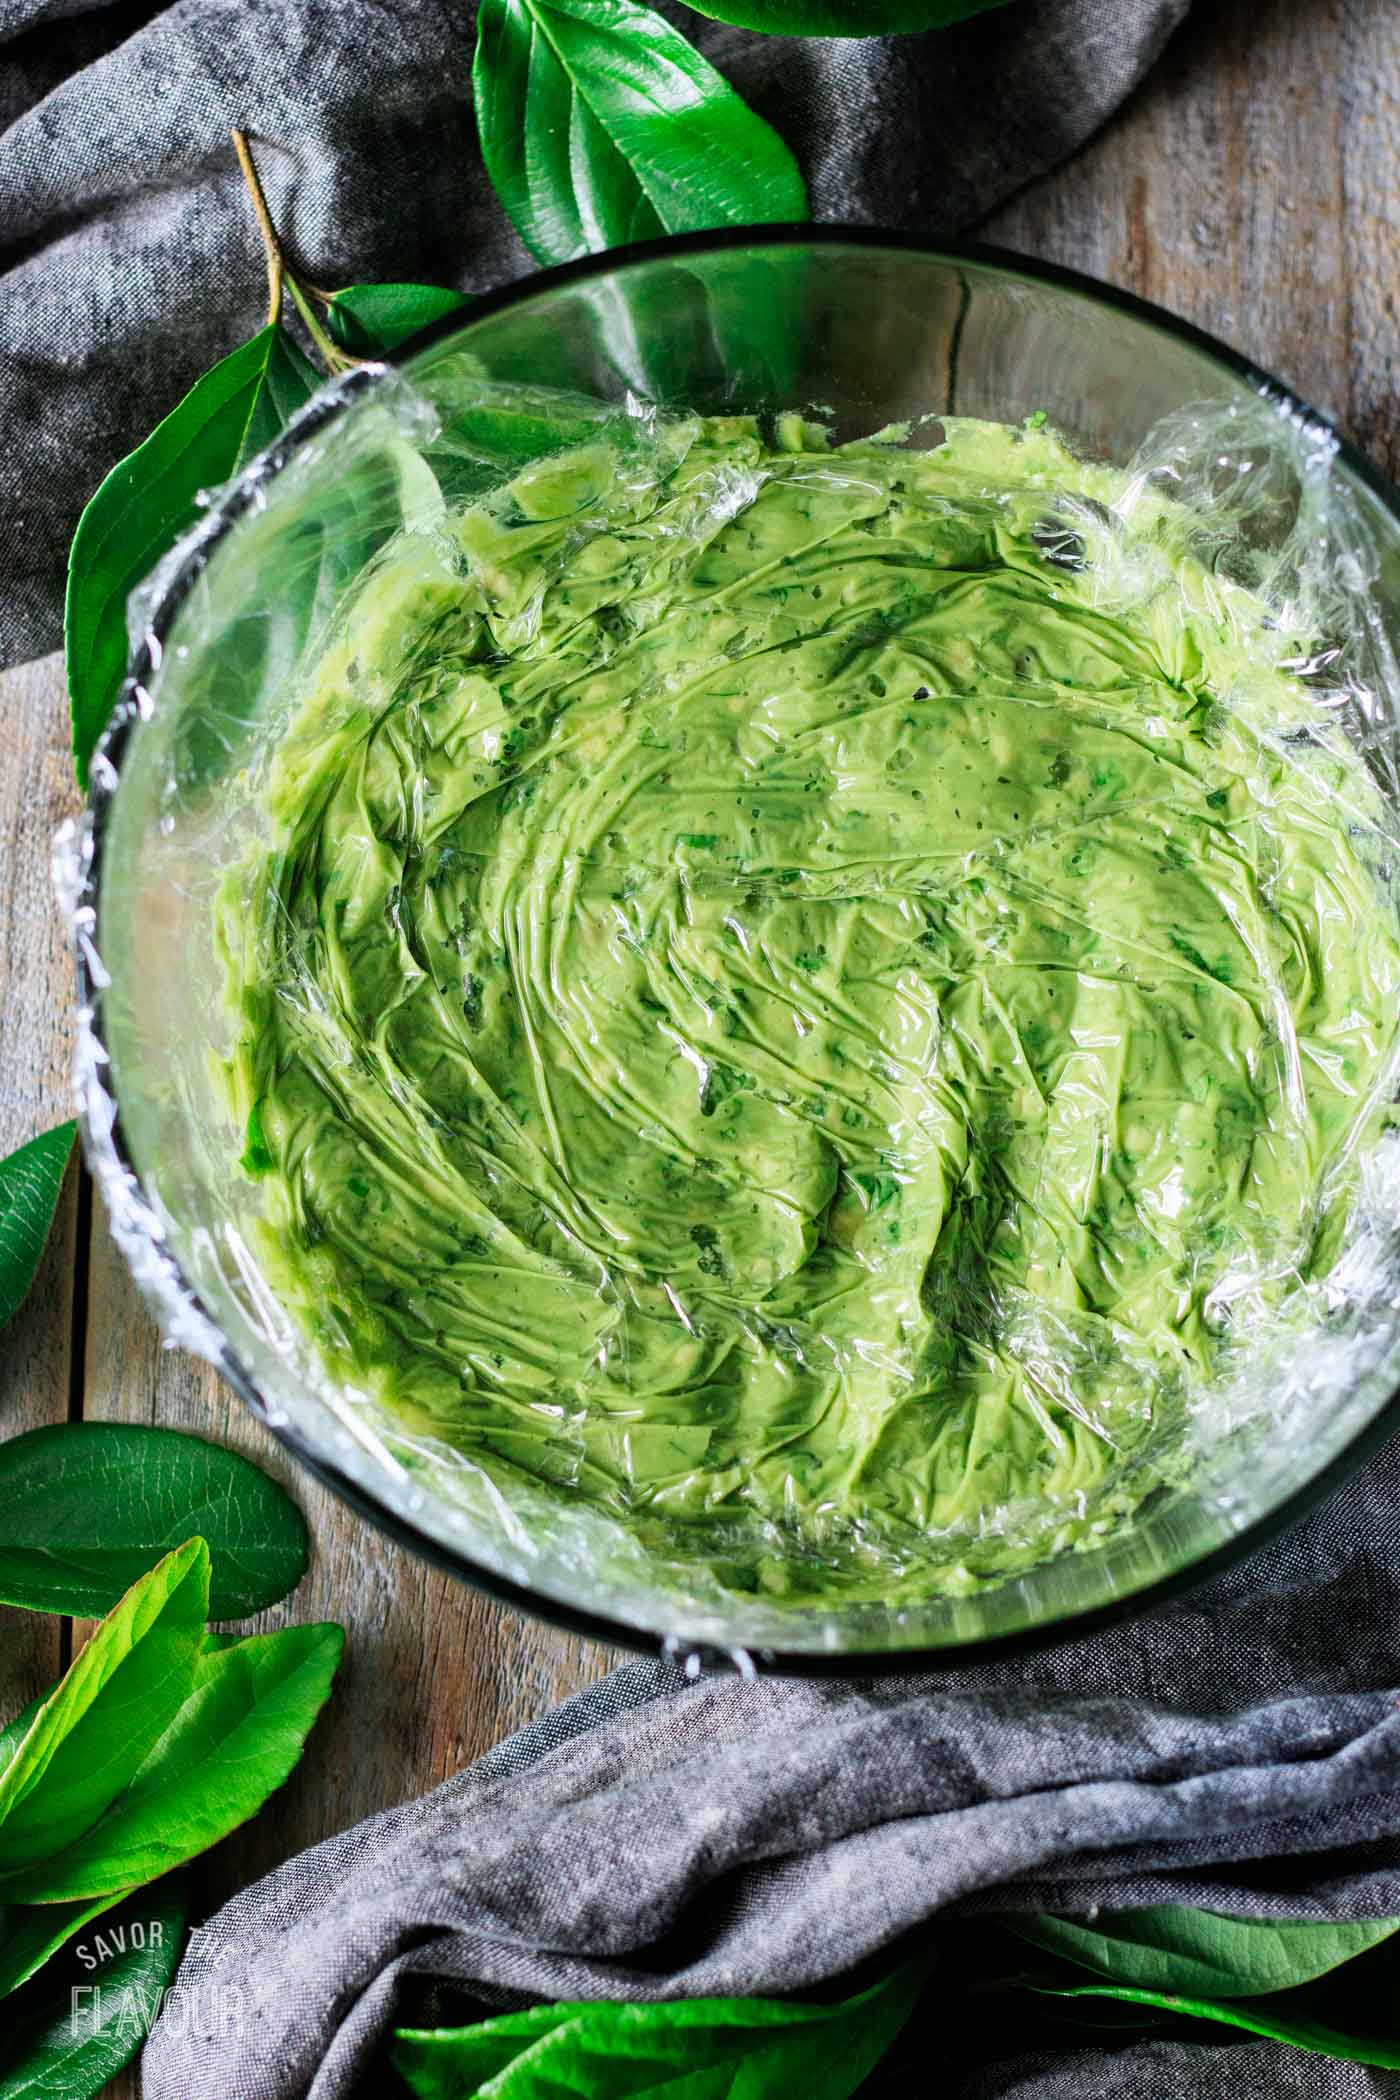 pressing plastic wrap onto surface of guacamole